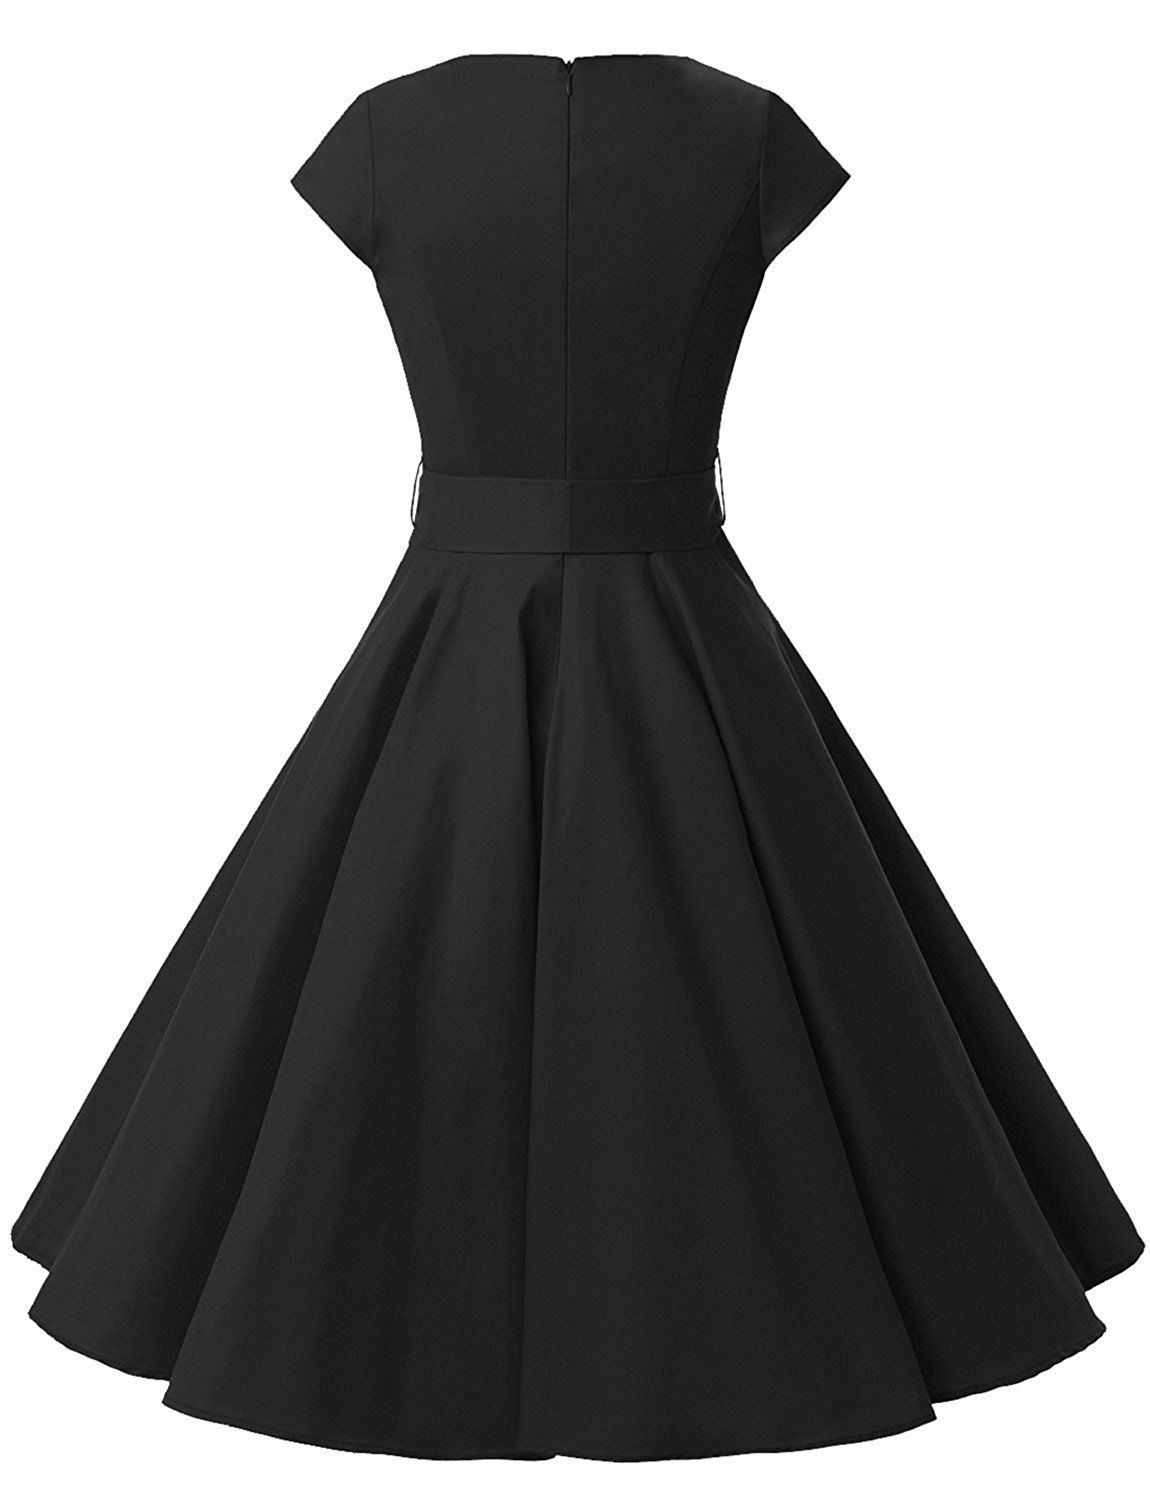 806956539c This elegant short dress features a cap sleeve round neckline.This dress is  perfect for casual or any special occasion. Fabric   Cotton Closure    Zipper ...